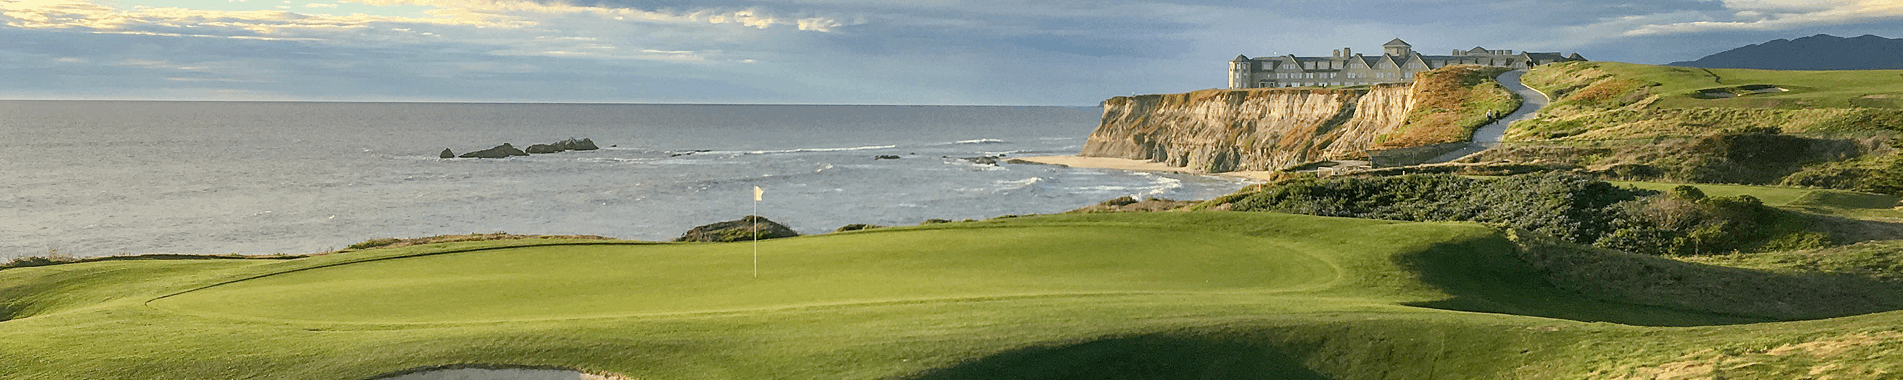 Half Moon Bay Golf Links eGift Certificate